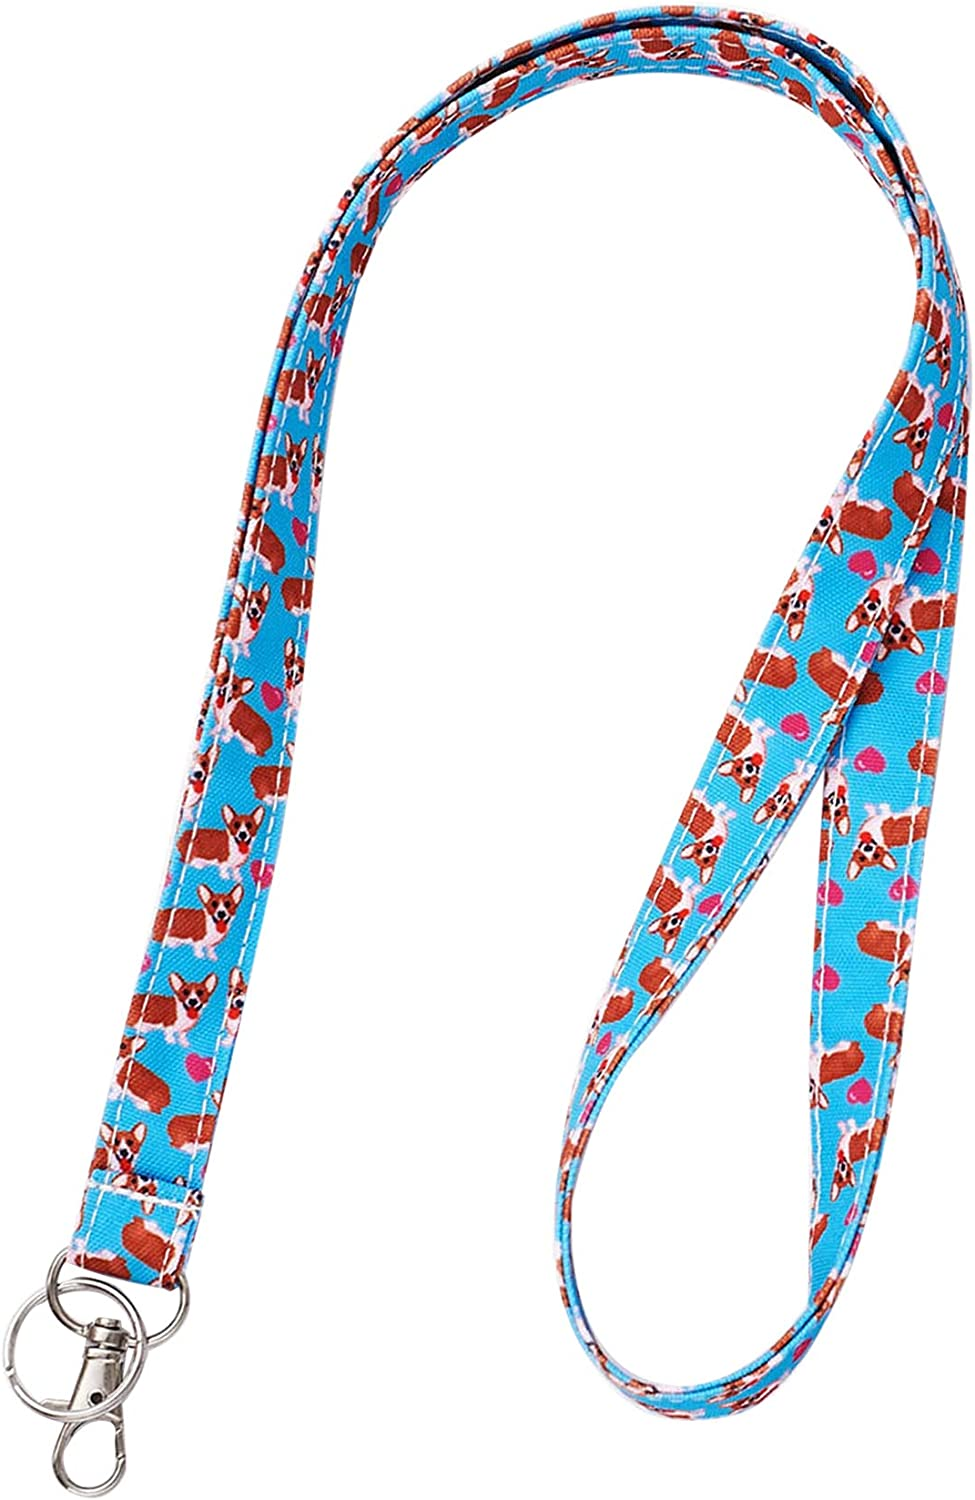 Dog Keychain Gift for Dog Lover Lanyard with Dogs Fabric Lanyard Dog ID Lanyard Dog Lanyard Gift for Coworker Gift under 10